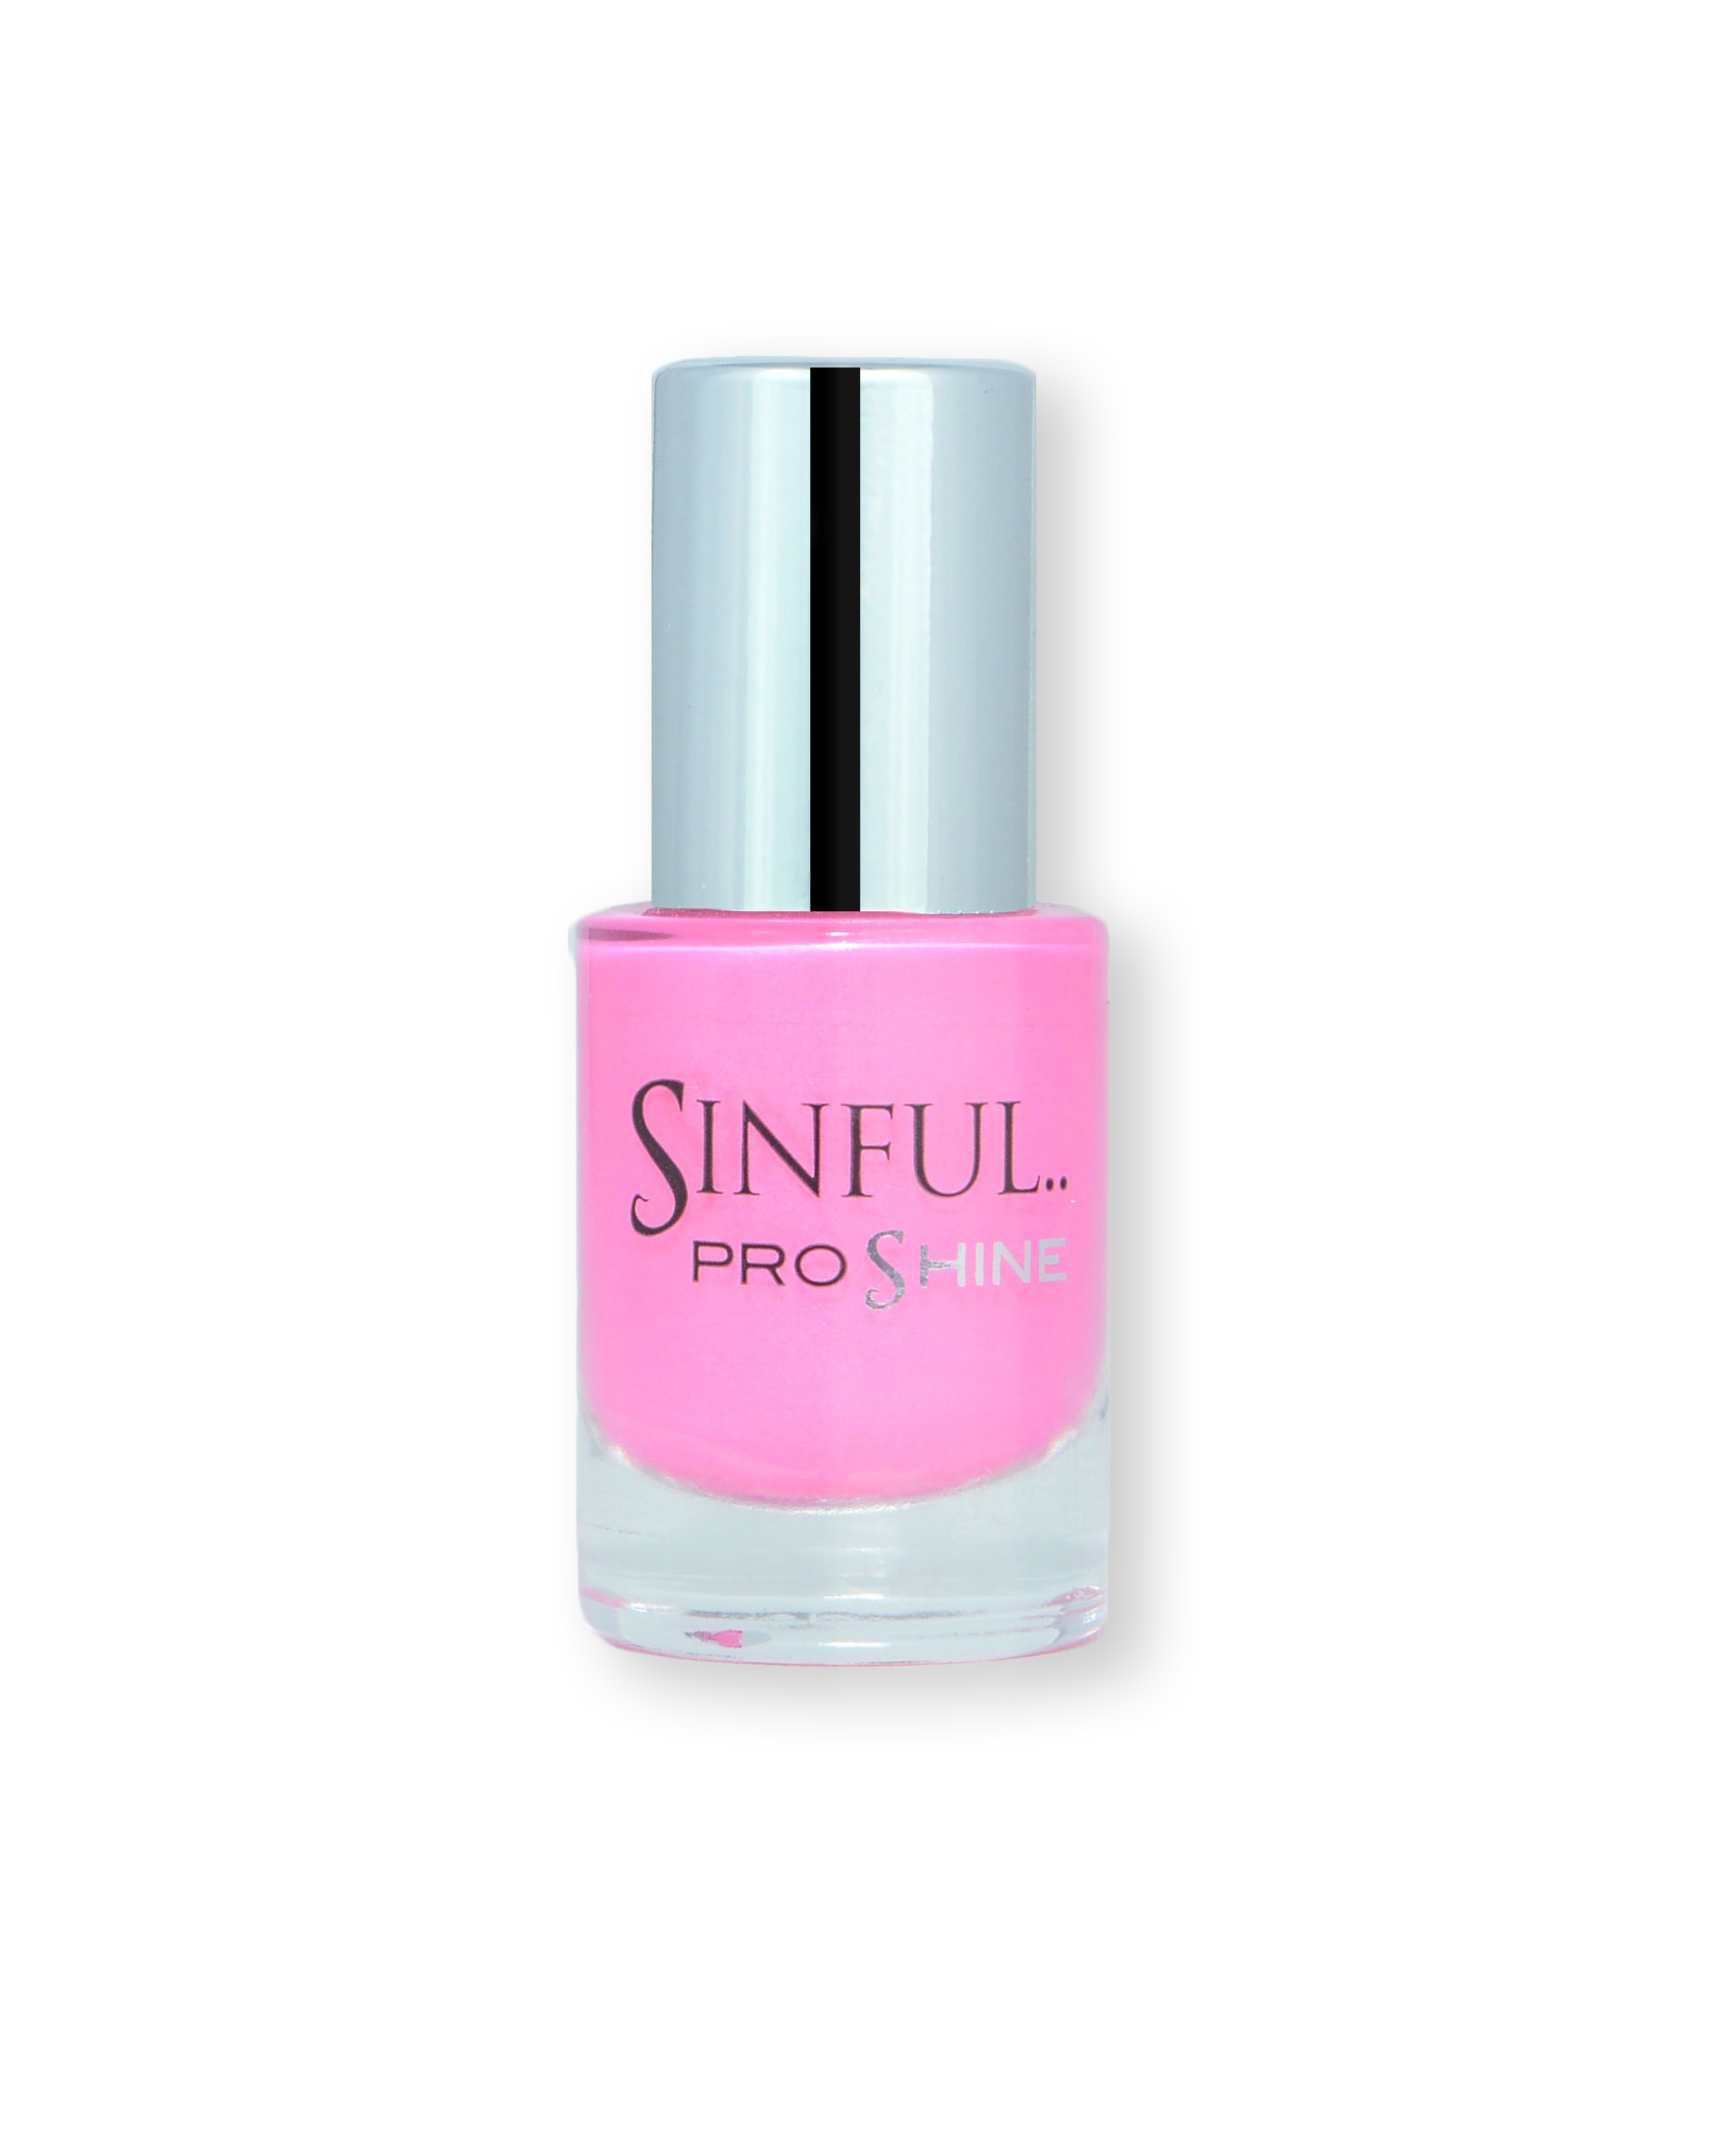 Sinful PROshine is a revolution into top spec imitation gel-like formula, easy application, full coverage and a sleek finish. Spoil yourself with the choice of 42 shades, expertly formulated with the finest grade of pigments. Ambitious: Angelic ballerina pink with a pearl finish